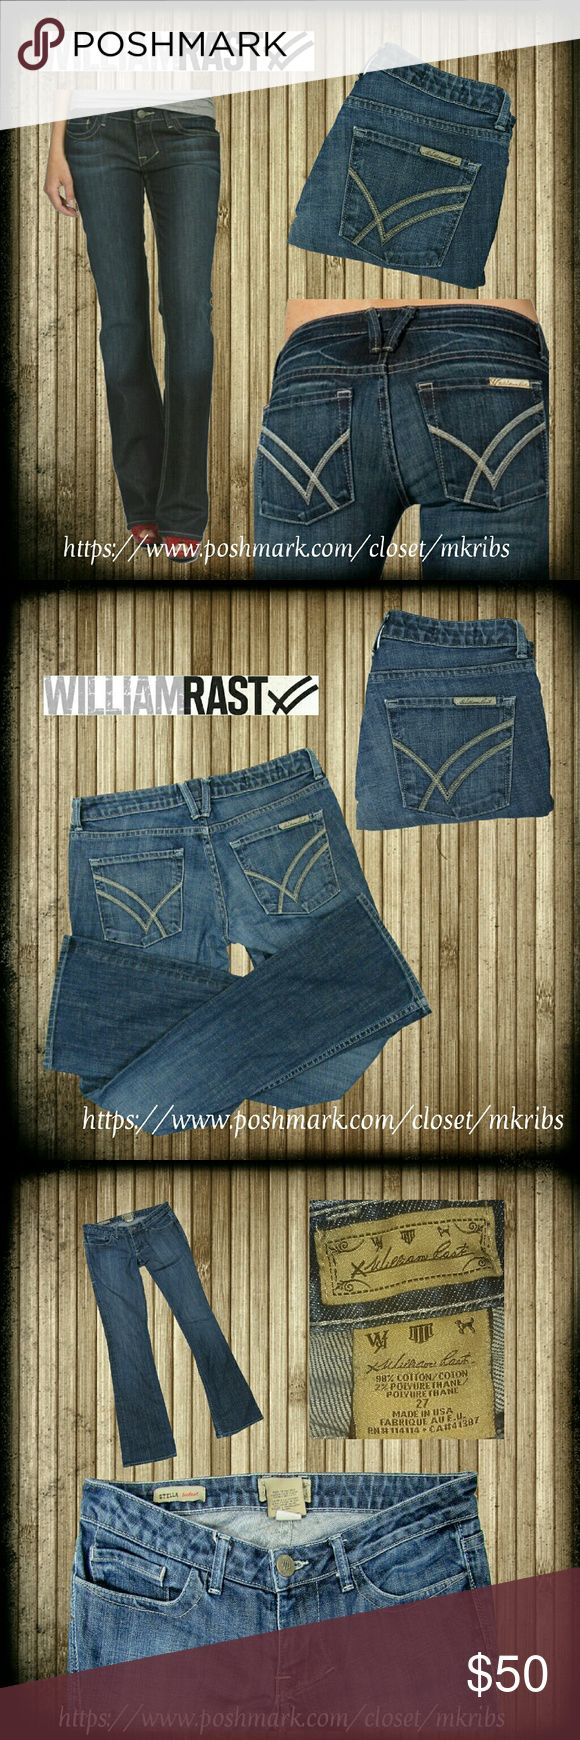 💜 William Rast Stella bootcut jeans 27 x 34 Like new! William Rast Stella Lowrise bootcut jeans with stretch.  34 inch inseam. First photo with jeans modeled is stock of the exact style. All other are taken by me. Color best represented in the 2nd photo. Measurements and details in photos. NO TRADES PLEASE! OFFERS WELCOME THROUGH OFFER FEATURE ONLY PLEASE William Rast Jeans